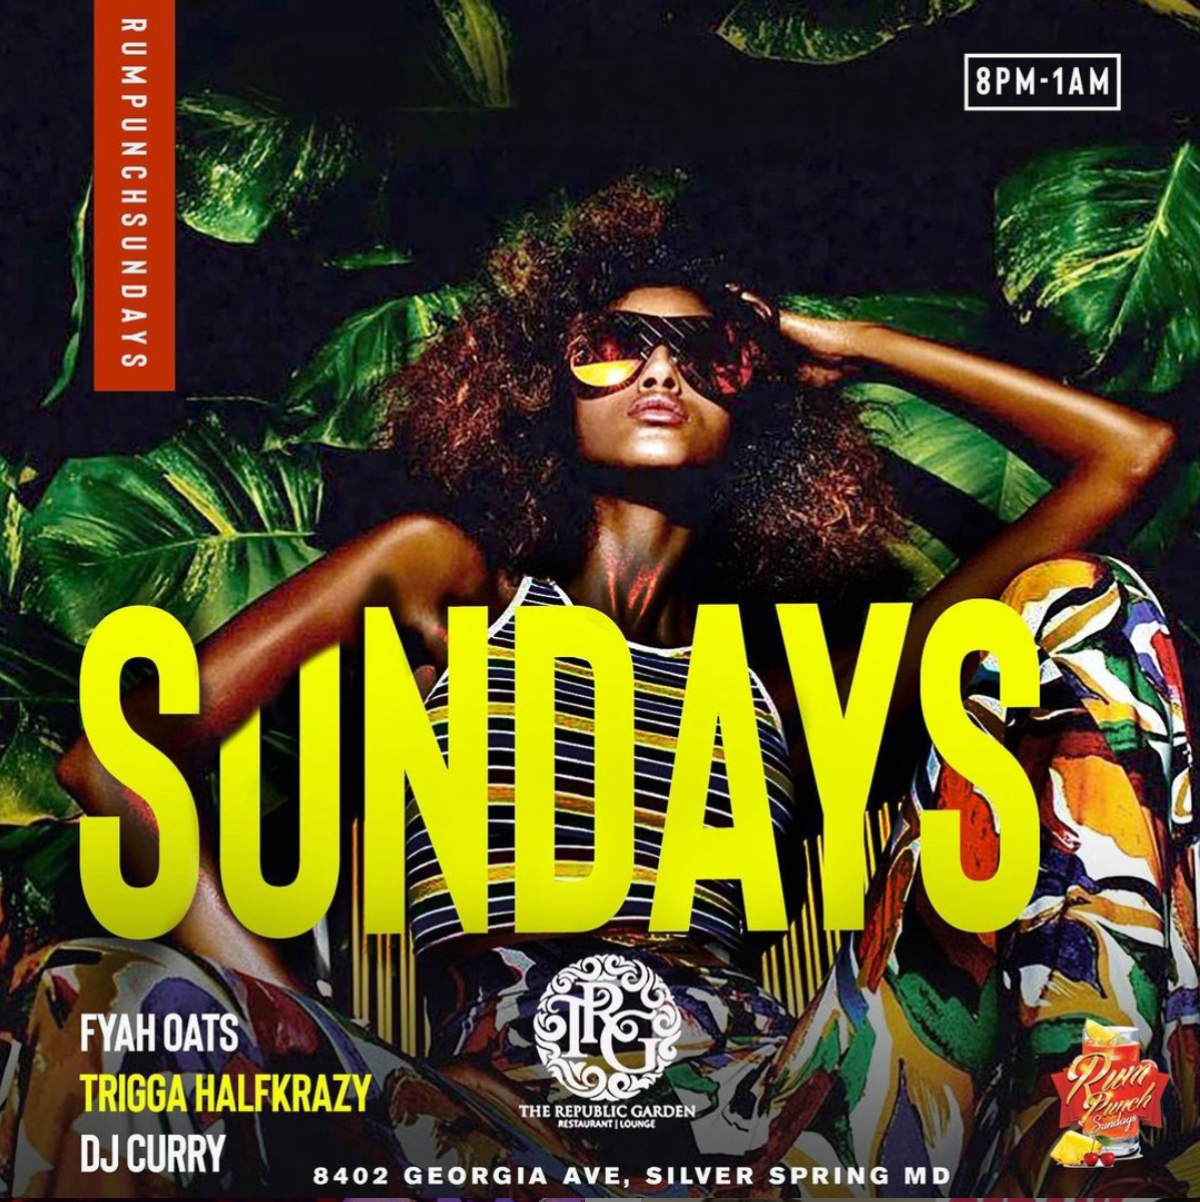 Rum Punch Sundays flyer or graphic.